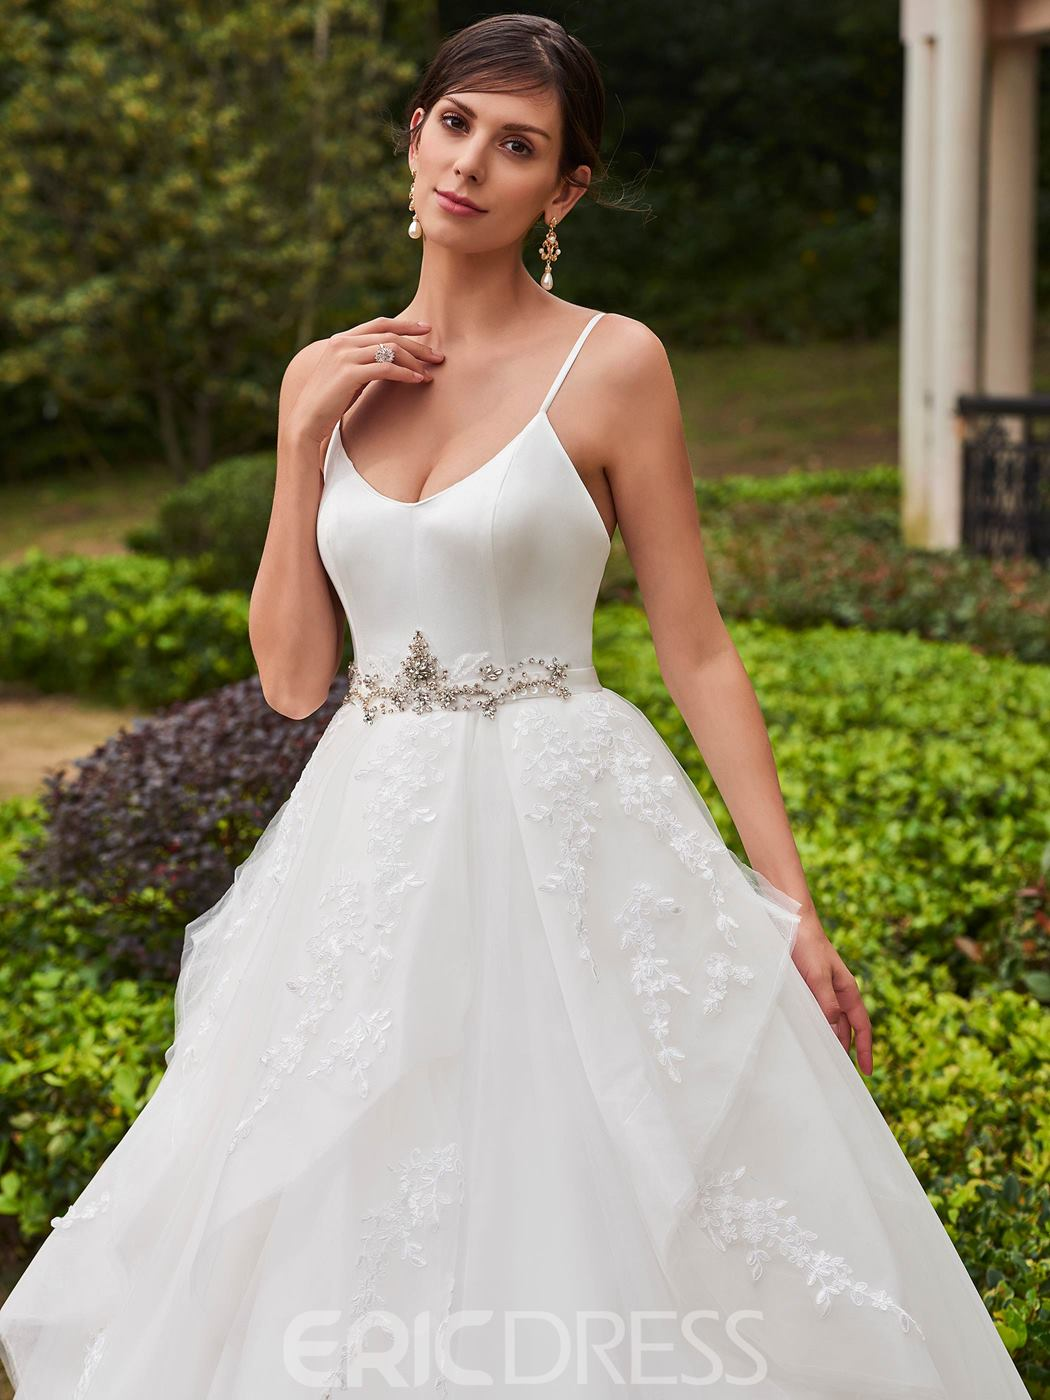 Ericdress Spaghetti Straps Beaded Appliques Ball Gown Wedding Dress